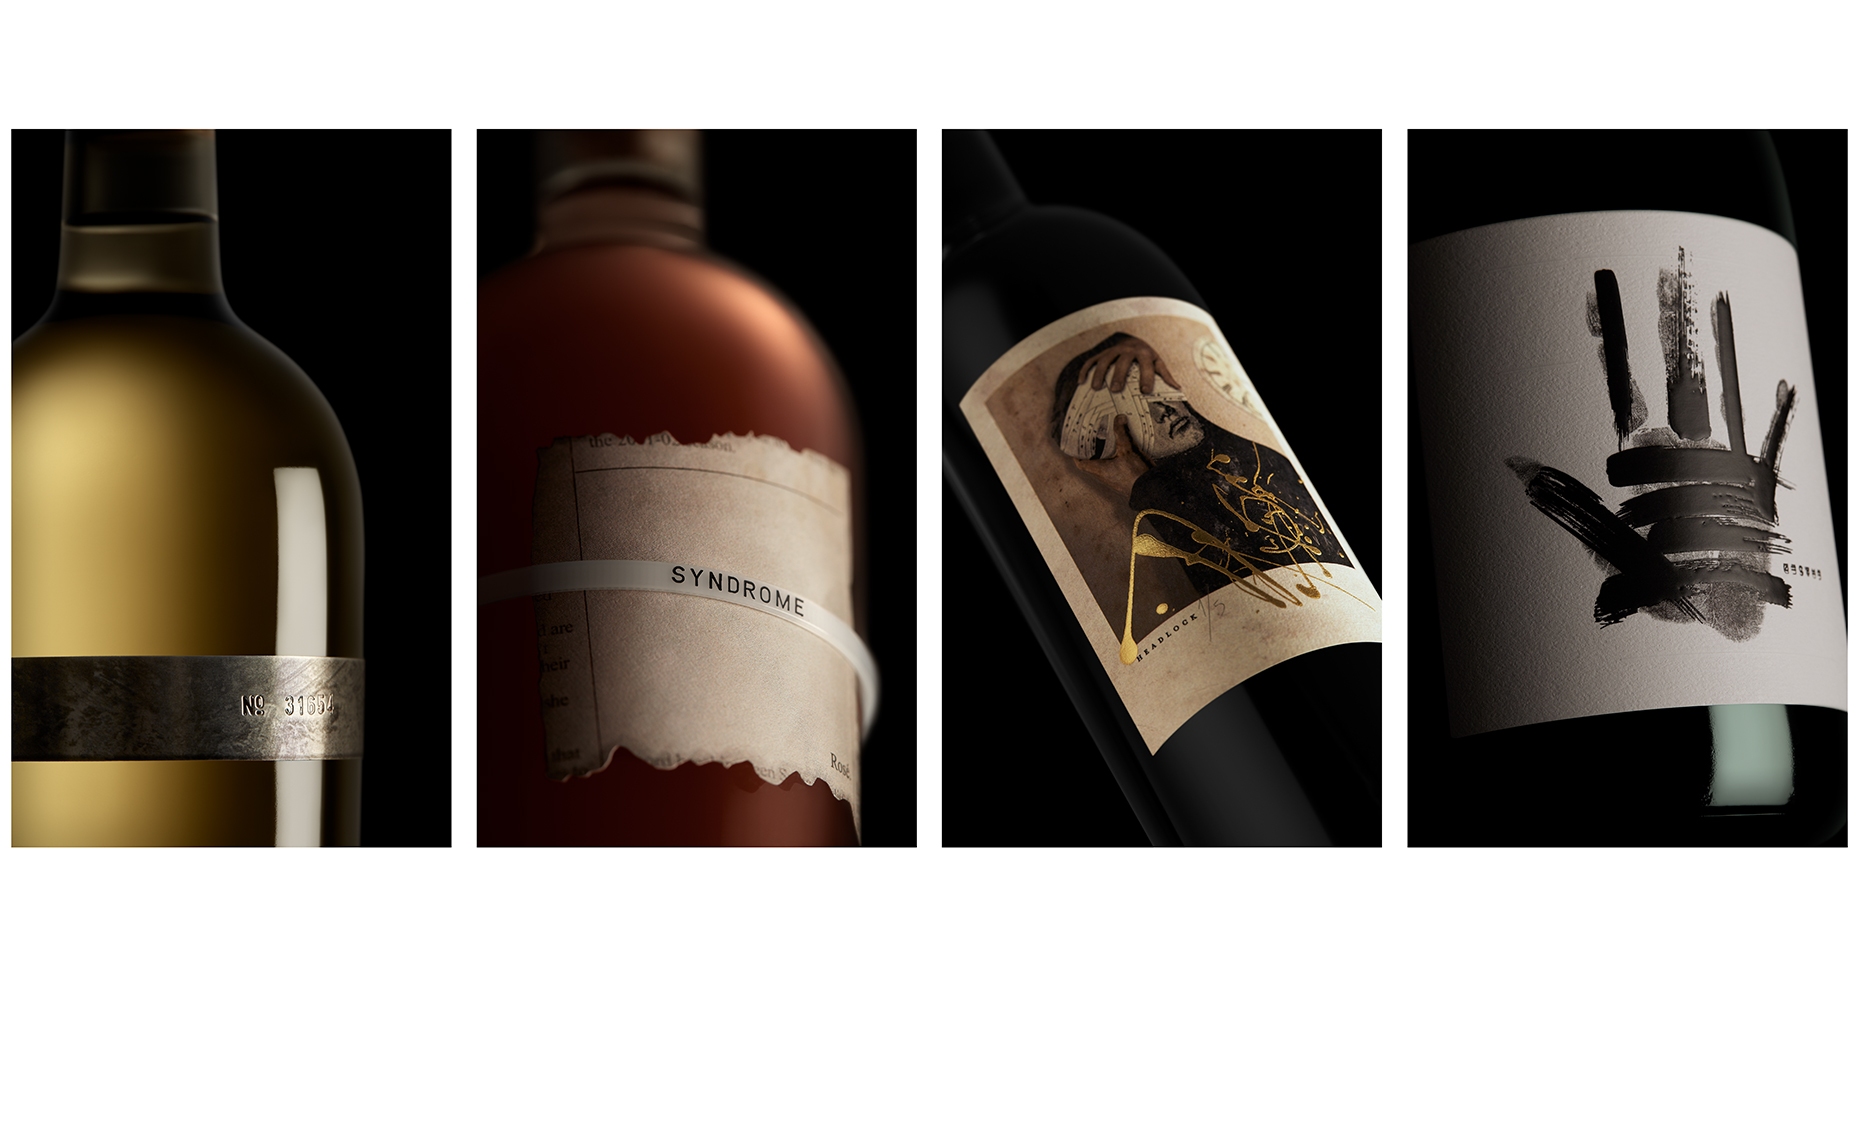 Red Productions Product & Still Life Photography Prisoner Wine Company Syndrome Rose, Headlock Red Blend, Erased Sparkling